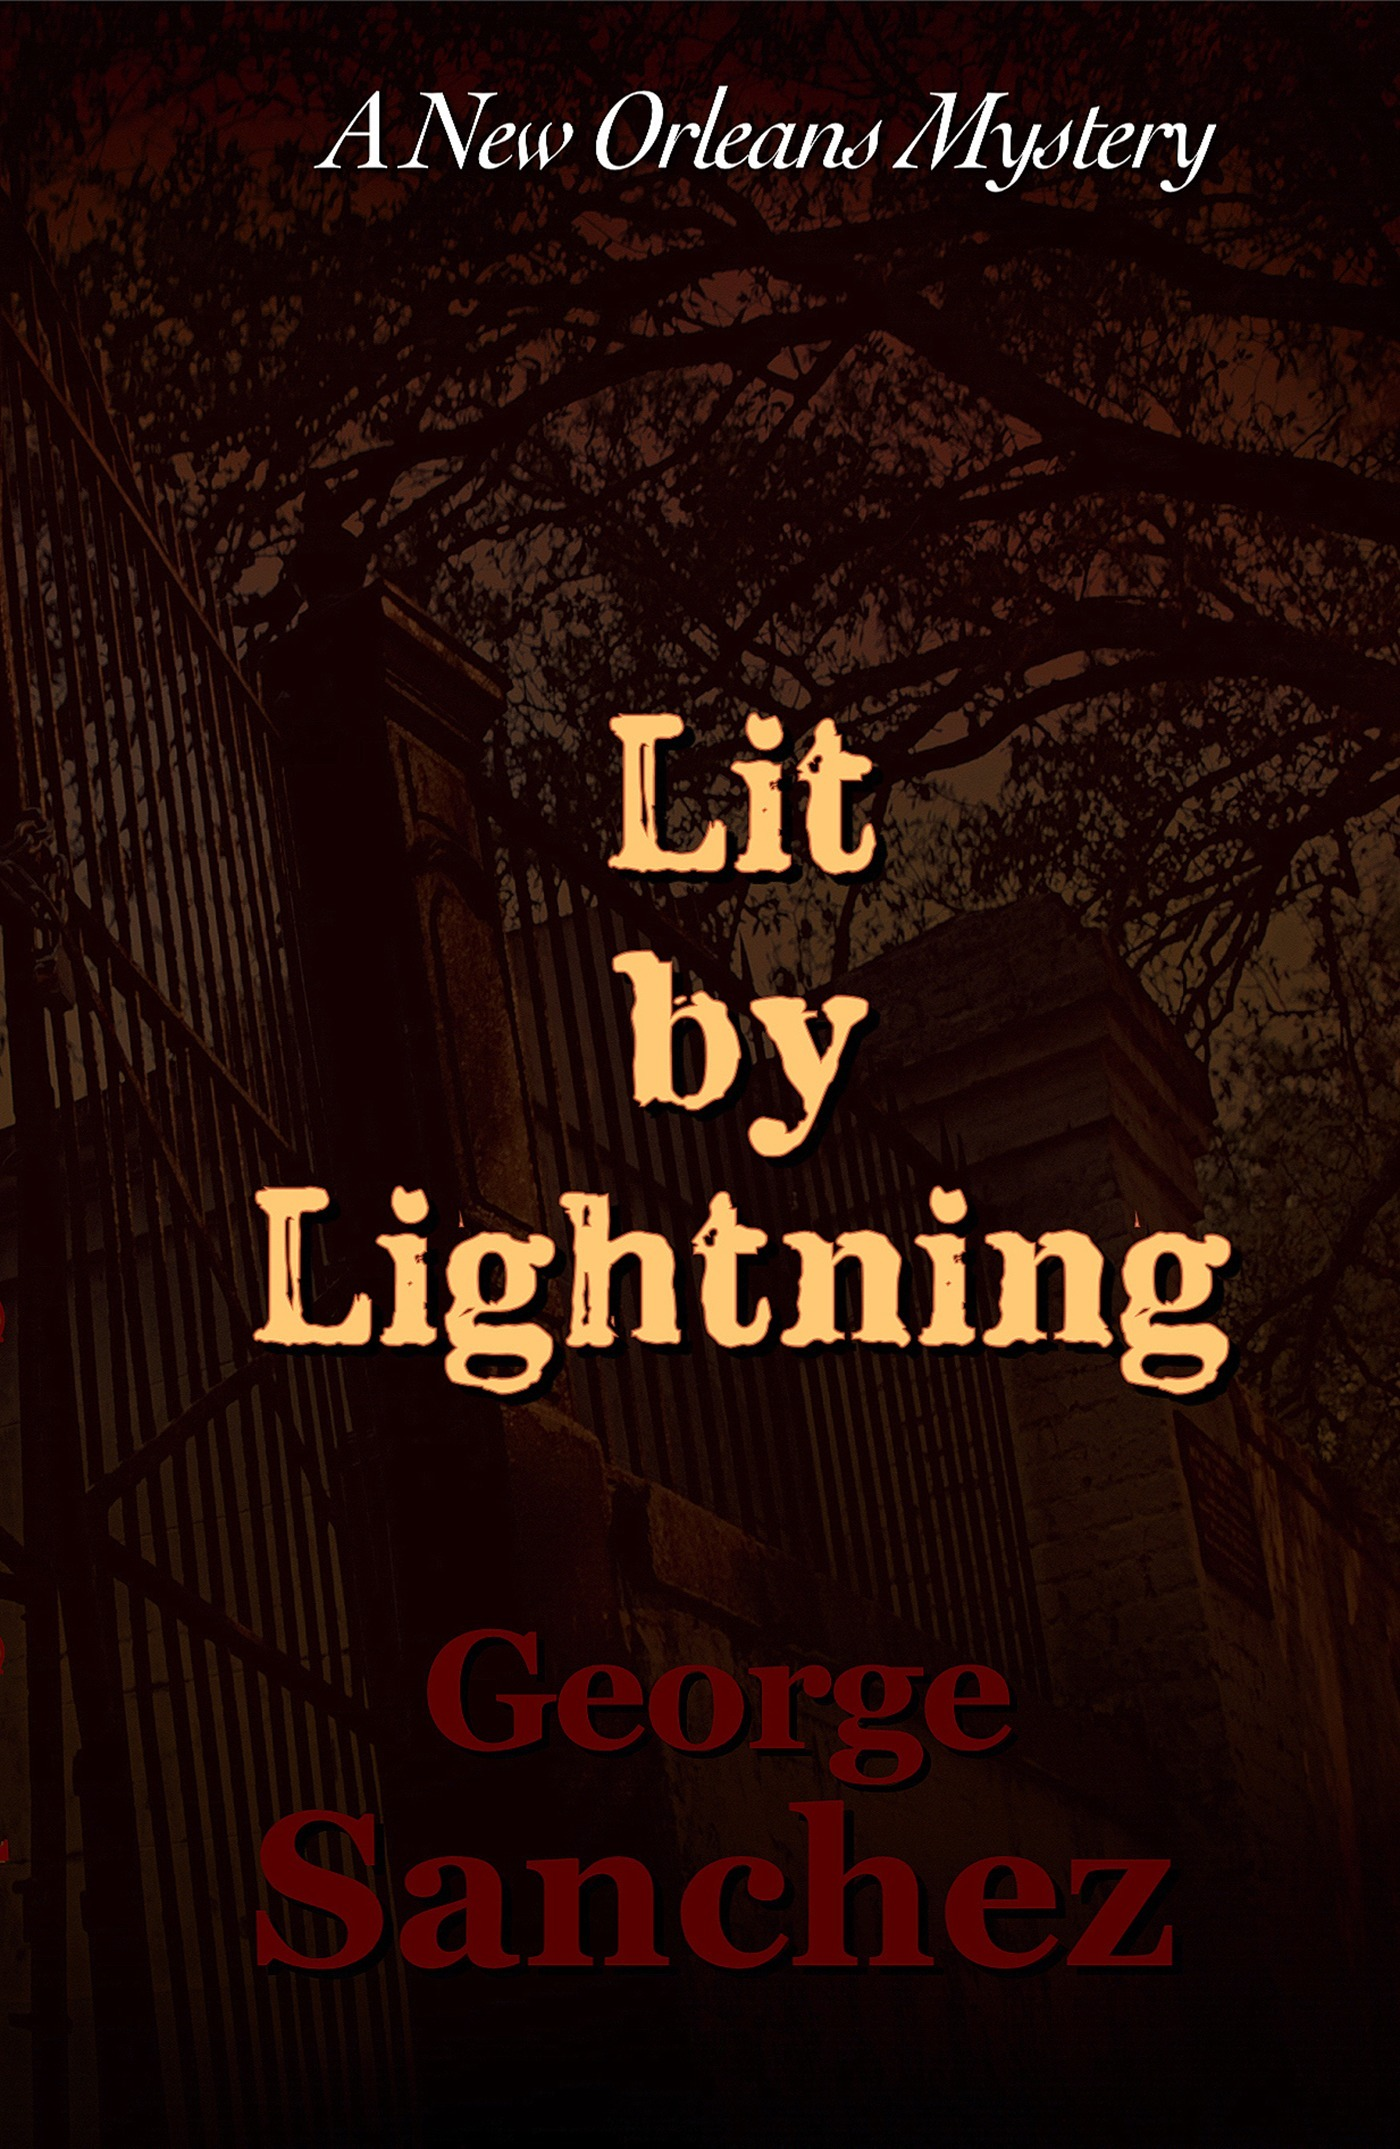 Lit Lightning: The First Jeff Chaussier New Orleans Mystery by George Sanchez